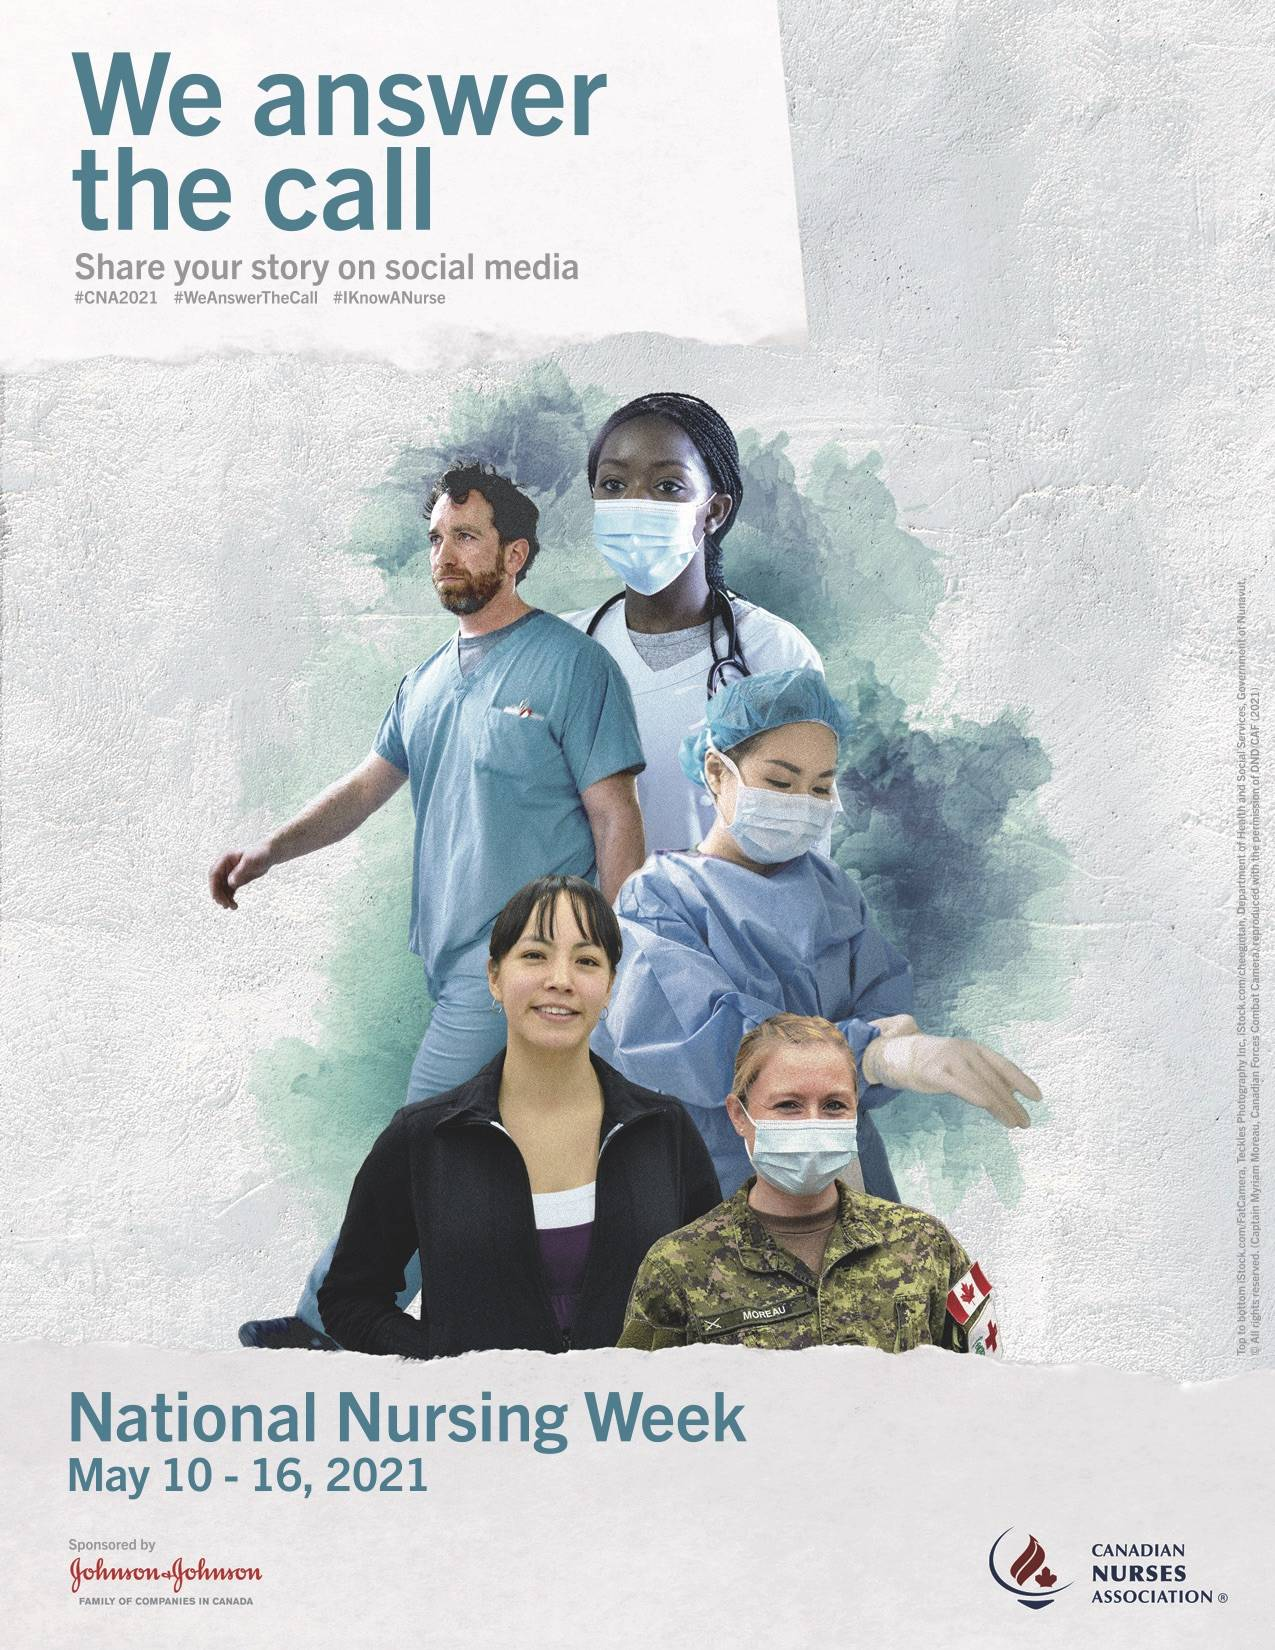 National Nursing Week is May 10 to 16, 2021. To commemorate the week, the public is asked to share their photos and stories online using #CNA2021, #WeAnswerTheCall, #IKnowANurse, and #NationalNursingWeek. (Canadian Nursing Association)